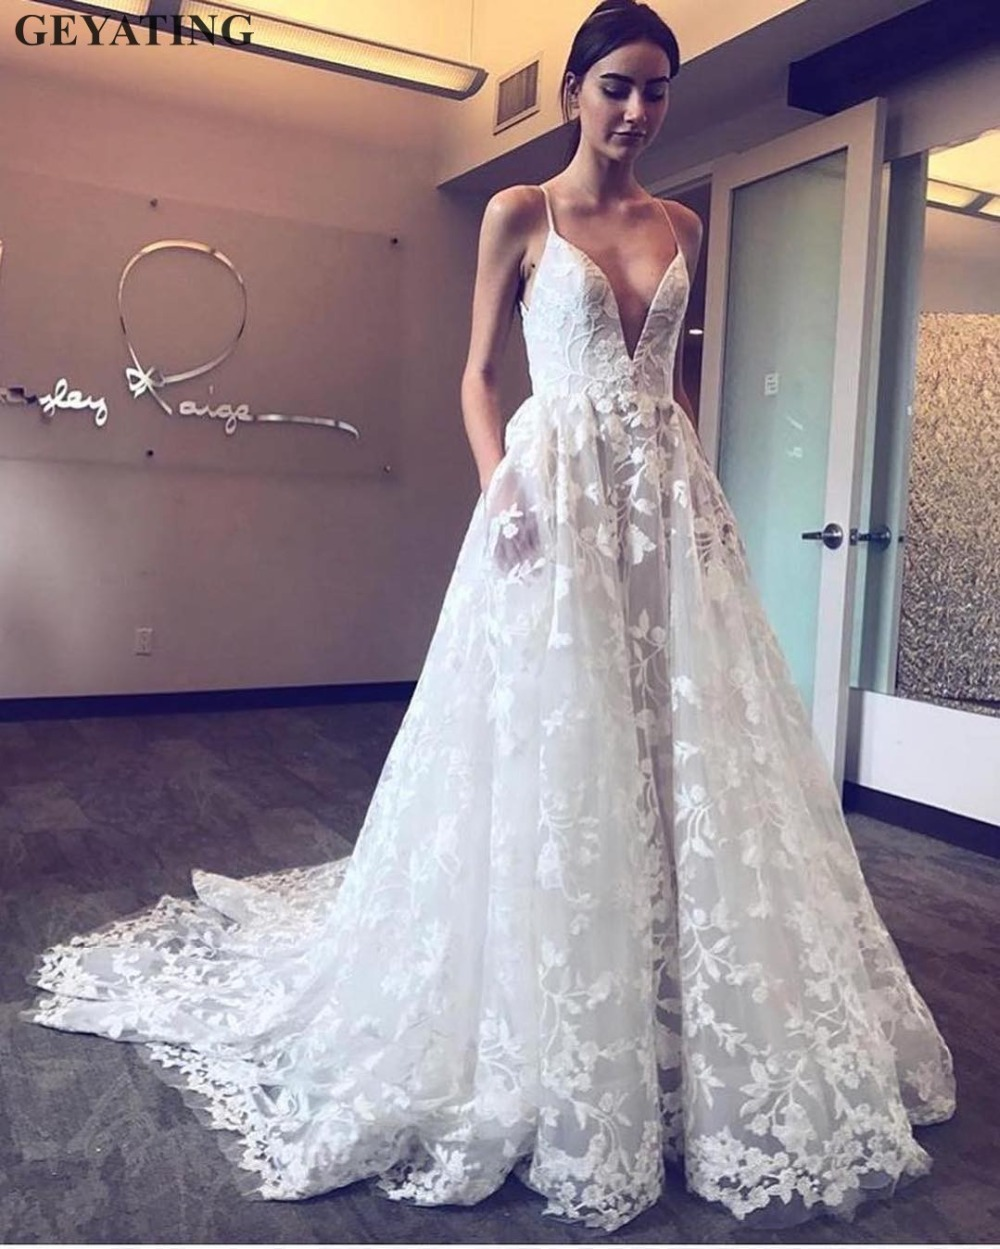 Pics Of Vintage Wedding Dresses: Vintage Boho Lace Wedding Dress 2019 Sexy Backless